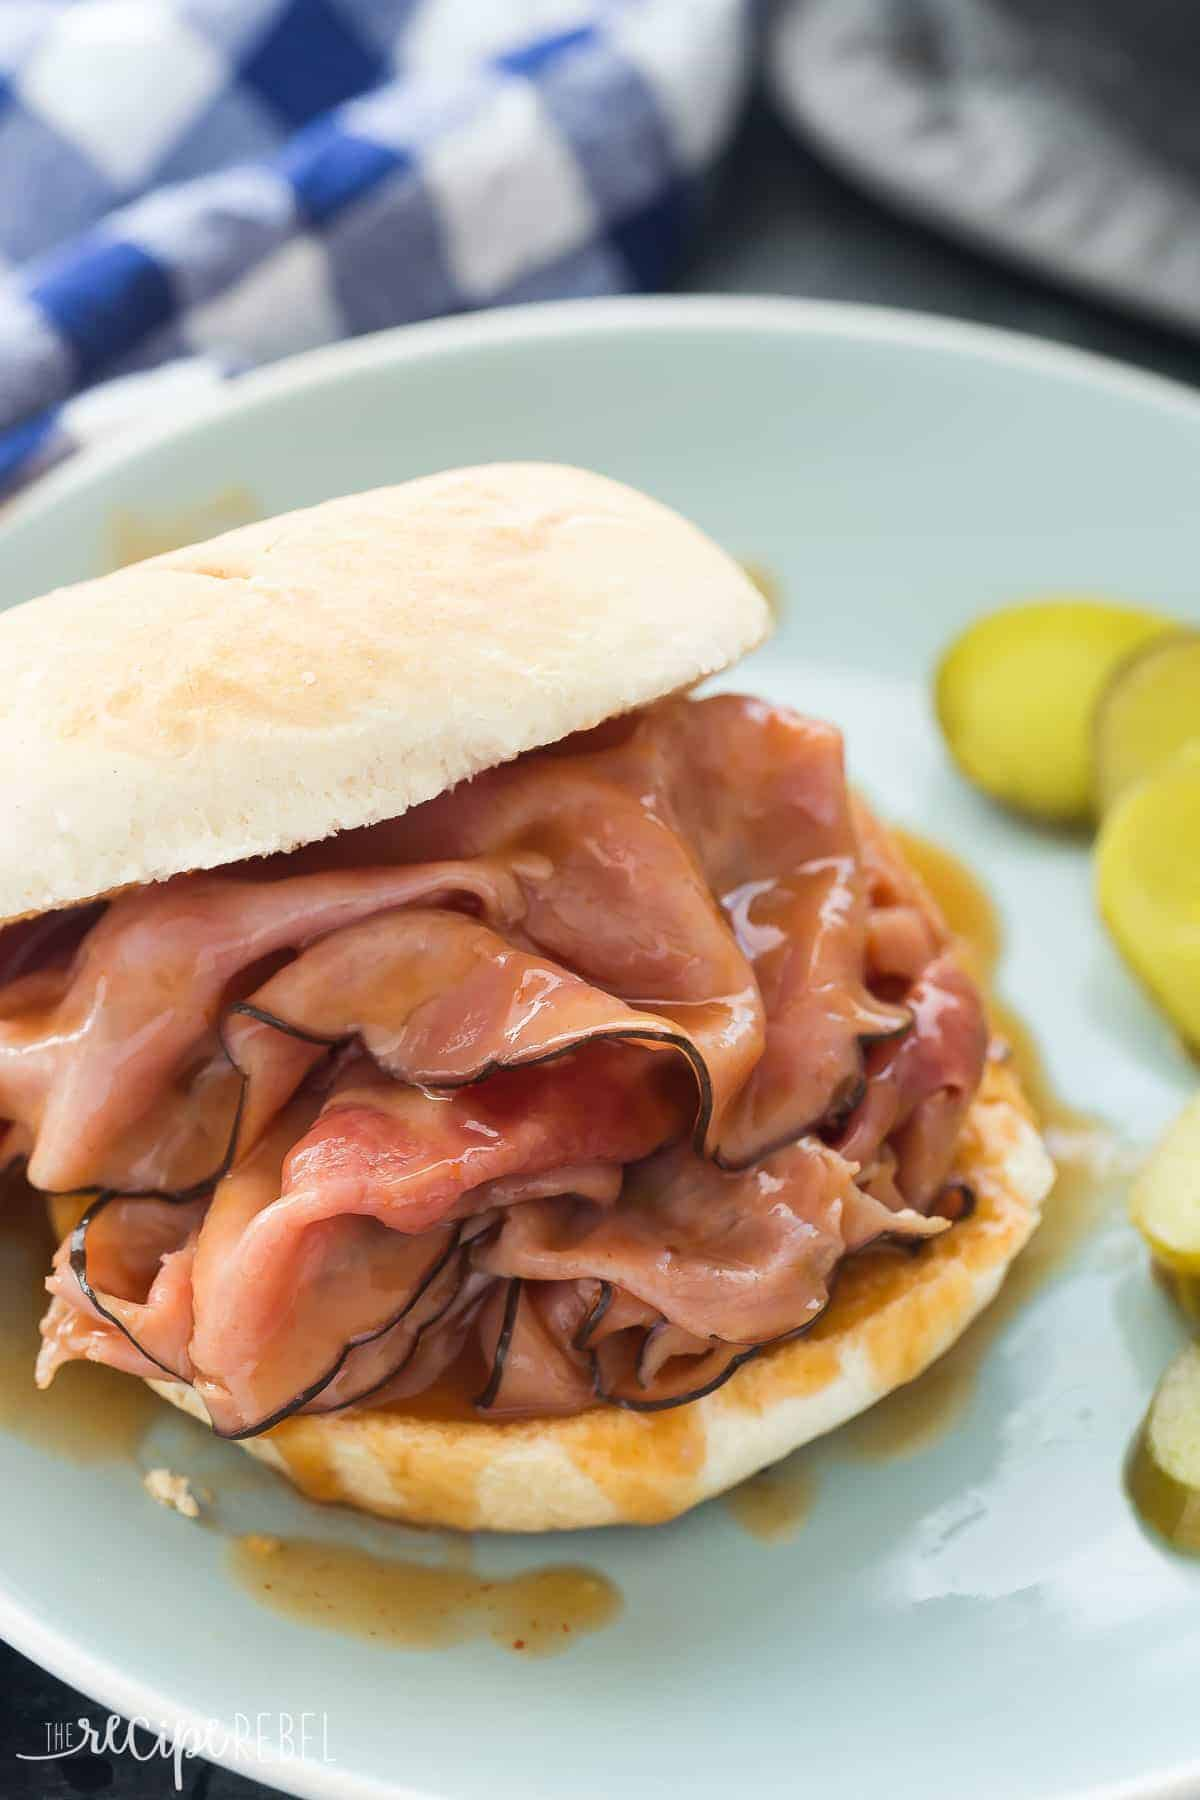 ham in barbecue sauce on white bun on blue plate with pickles on the side